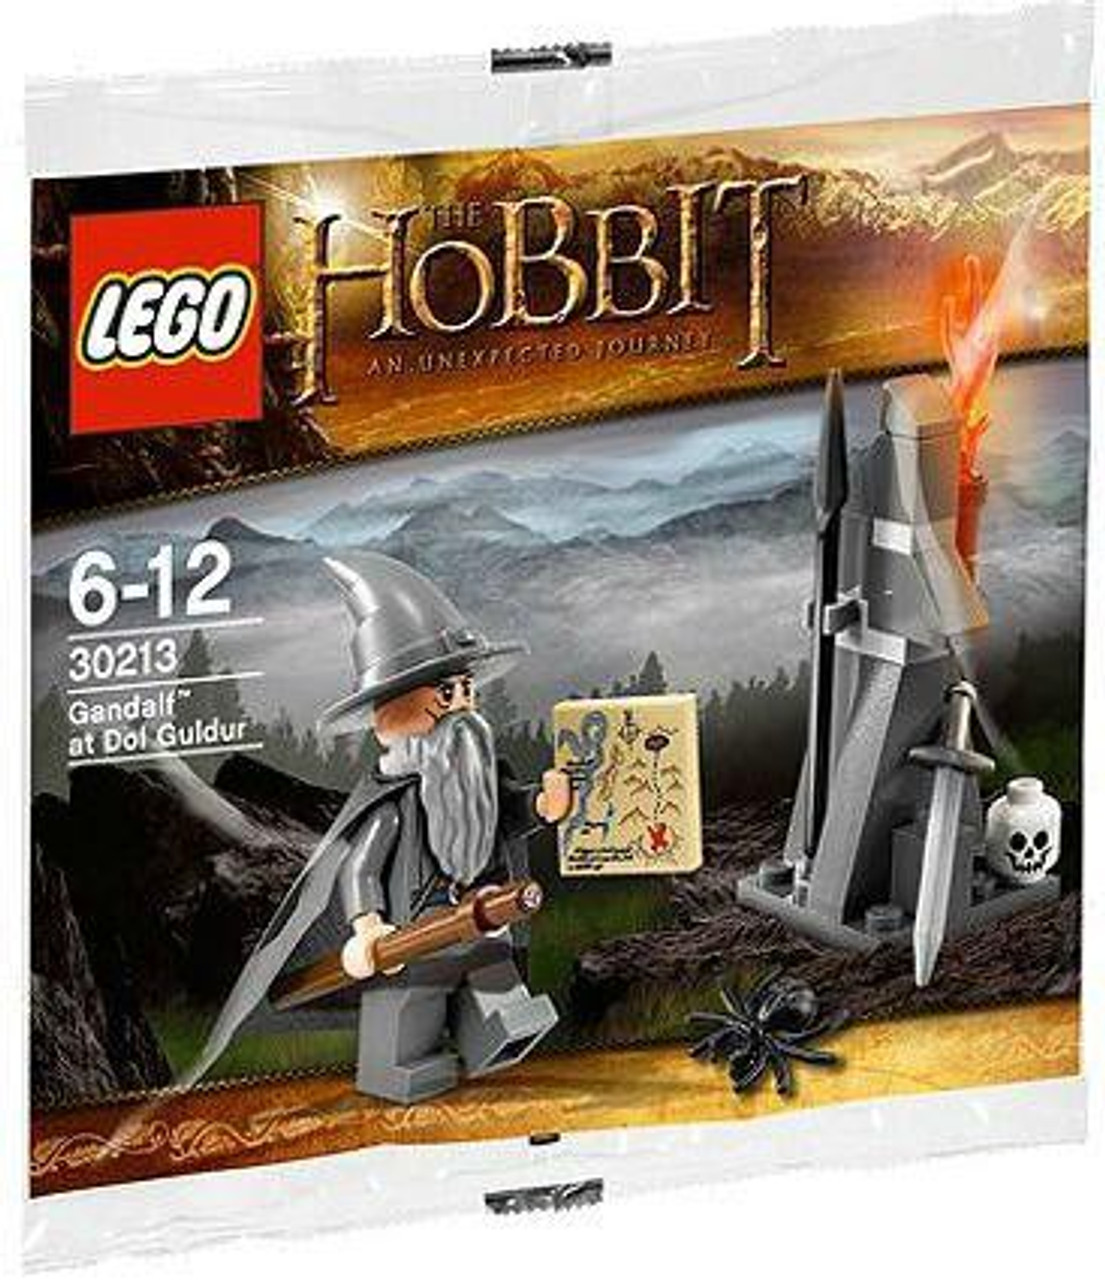 LEGO The Hobbit Gandalf at Dol Goldur Mini Set #30213 [Bagged]